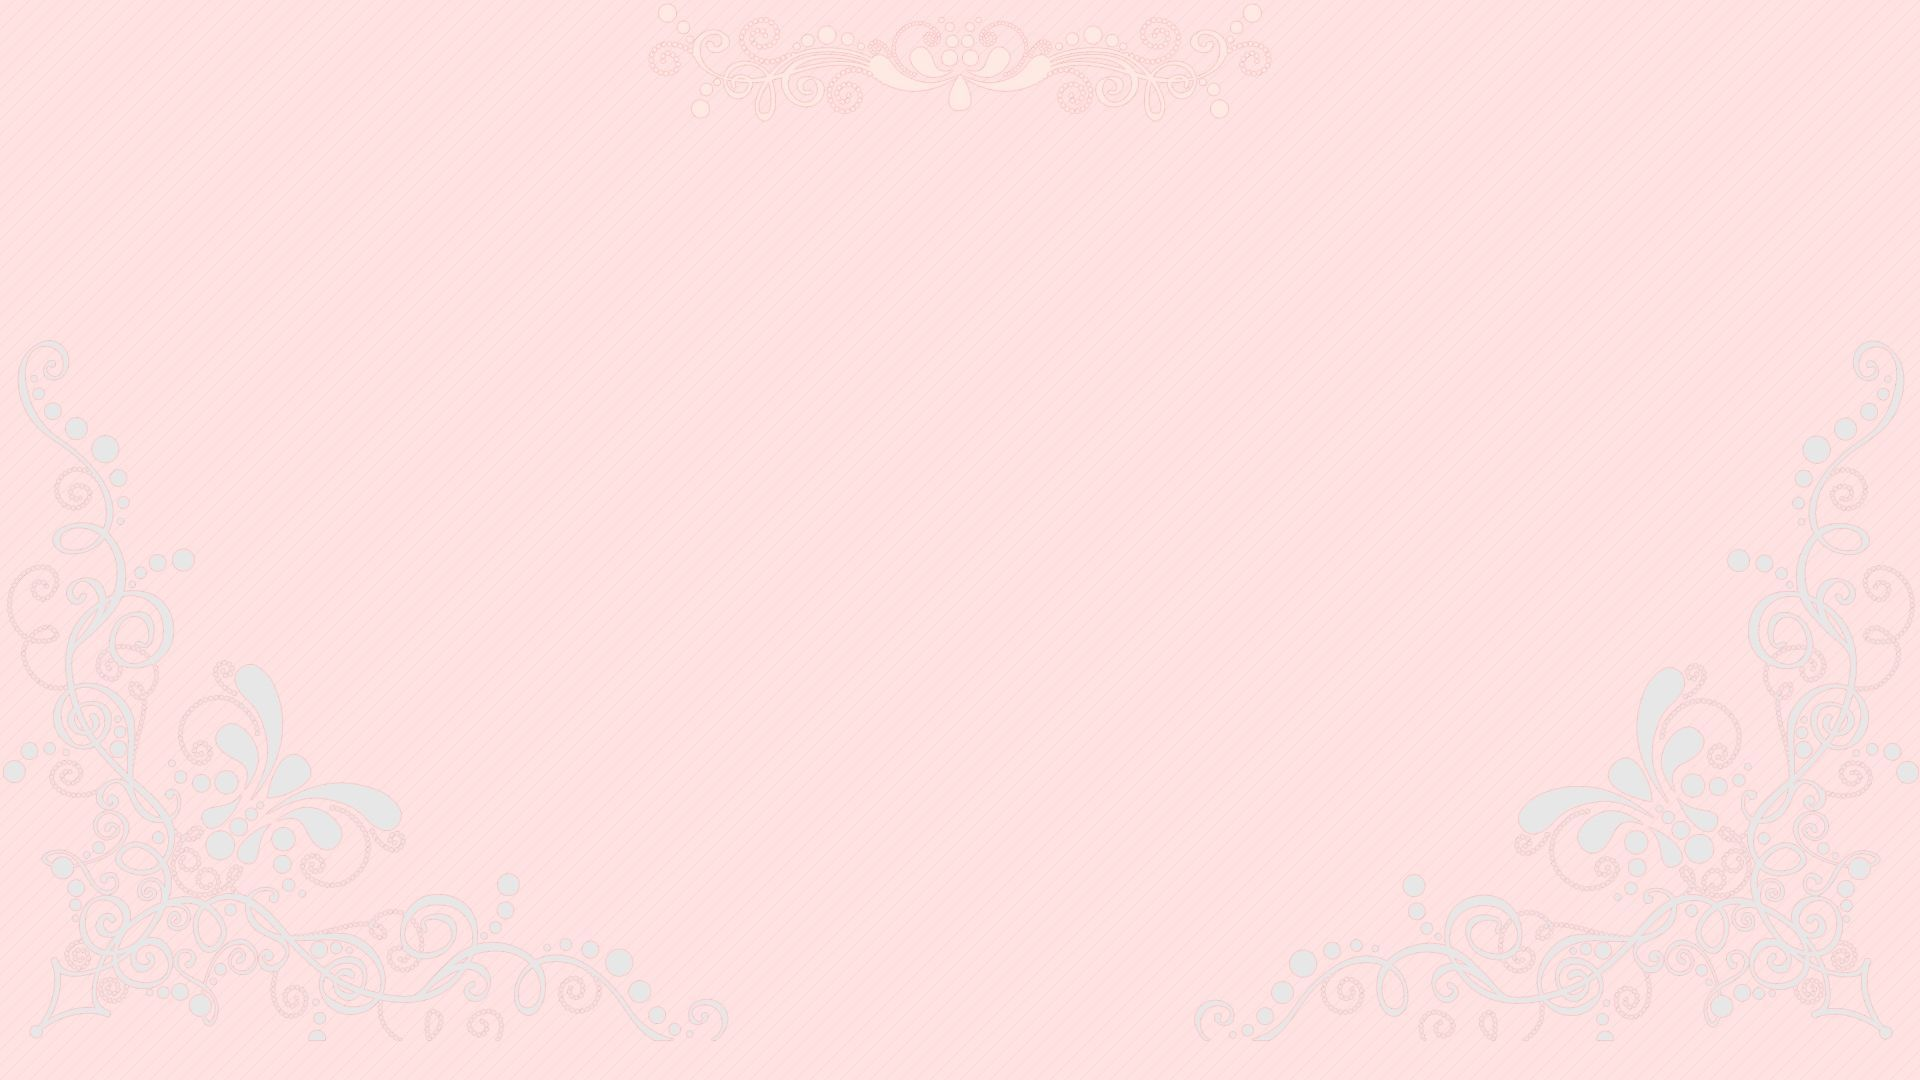 Pastel Pink Aesthetic Desktop Wallpapers On Wallpaperdog Feel free to share aesthetic wallpapers and background images with your friends. pastel pink aesthetic desktop